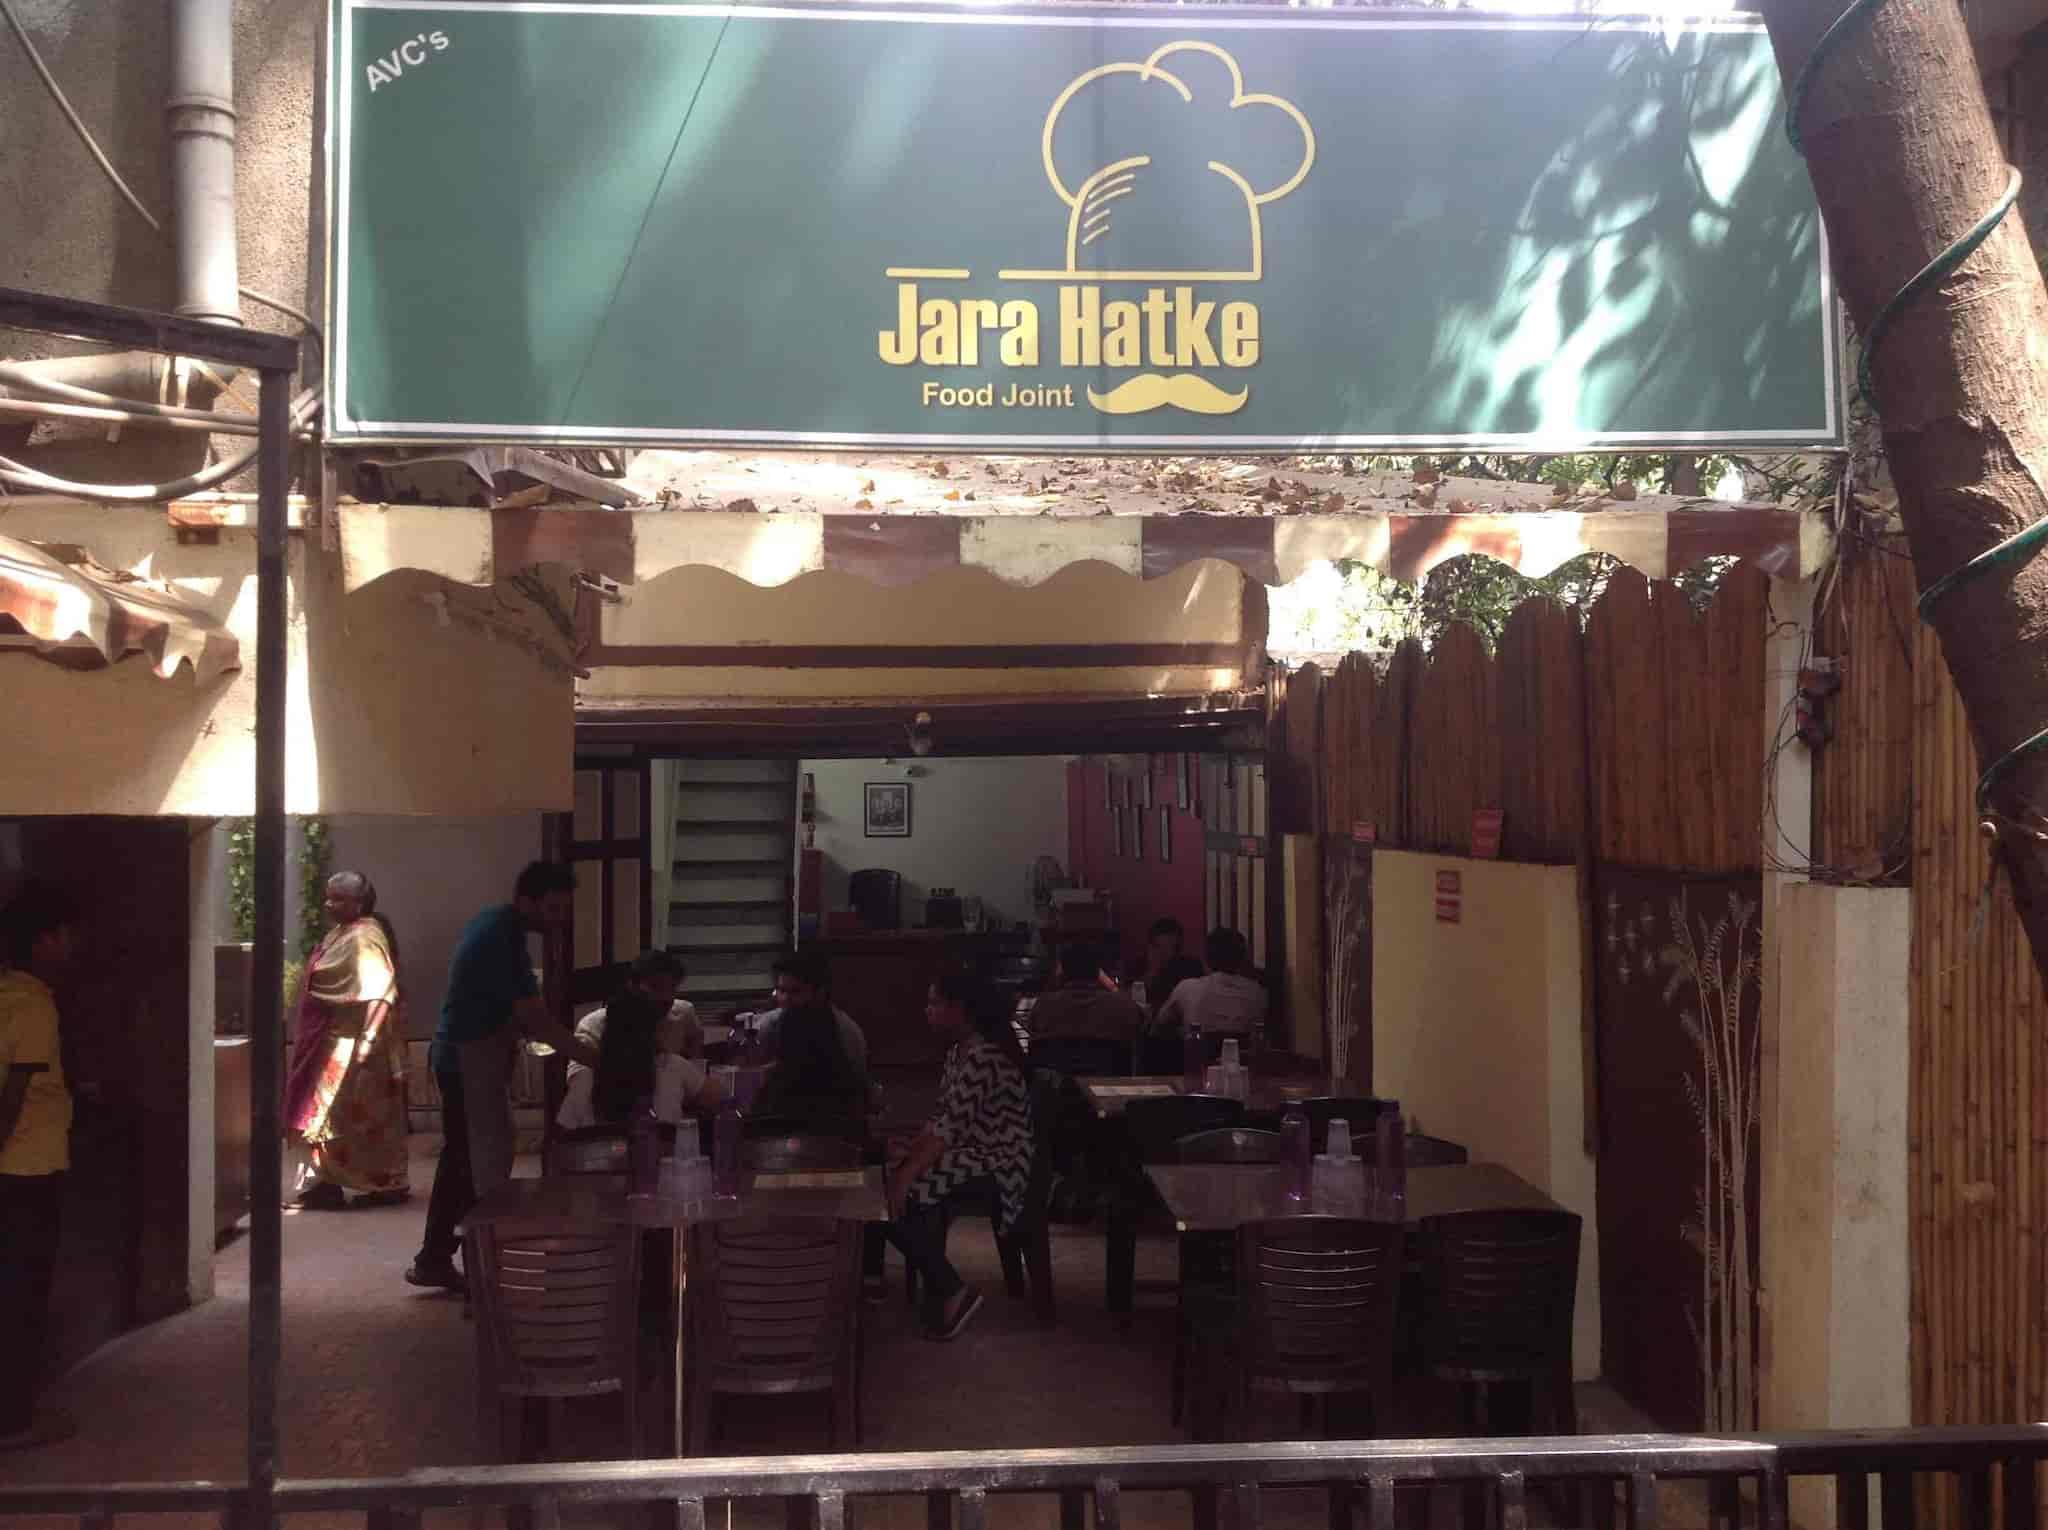 and jara hatke hotel